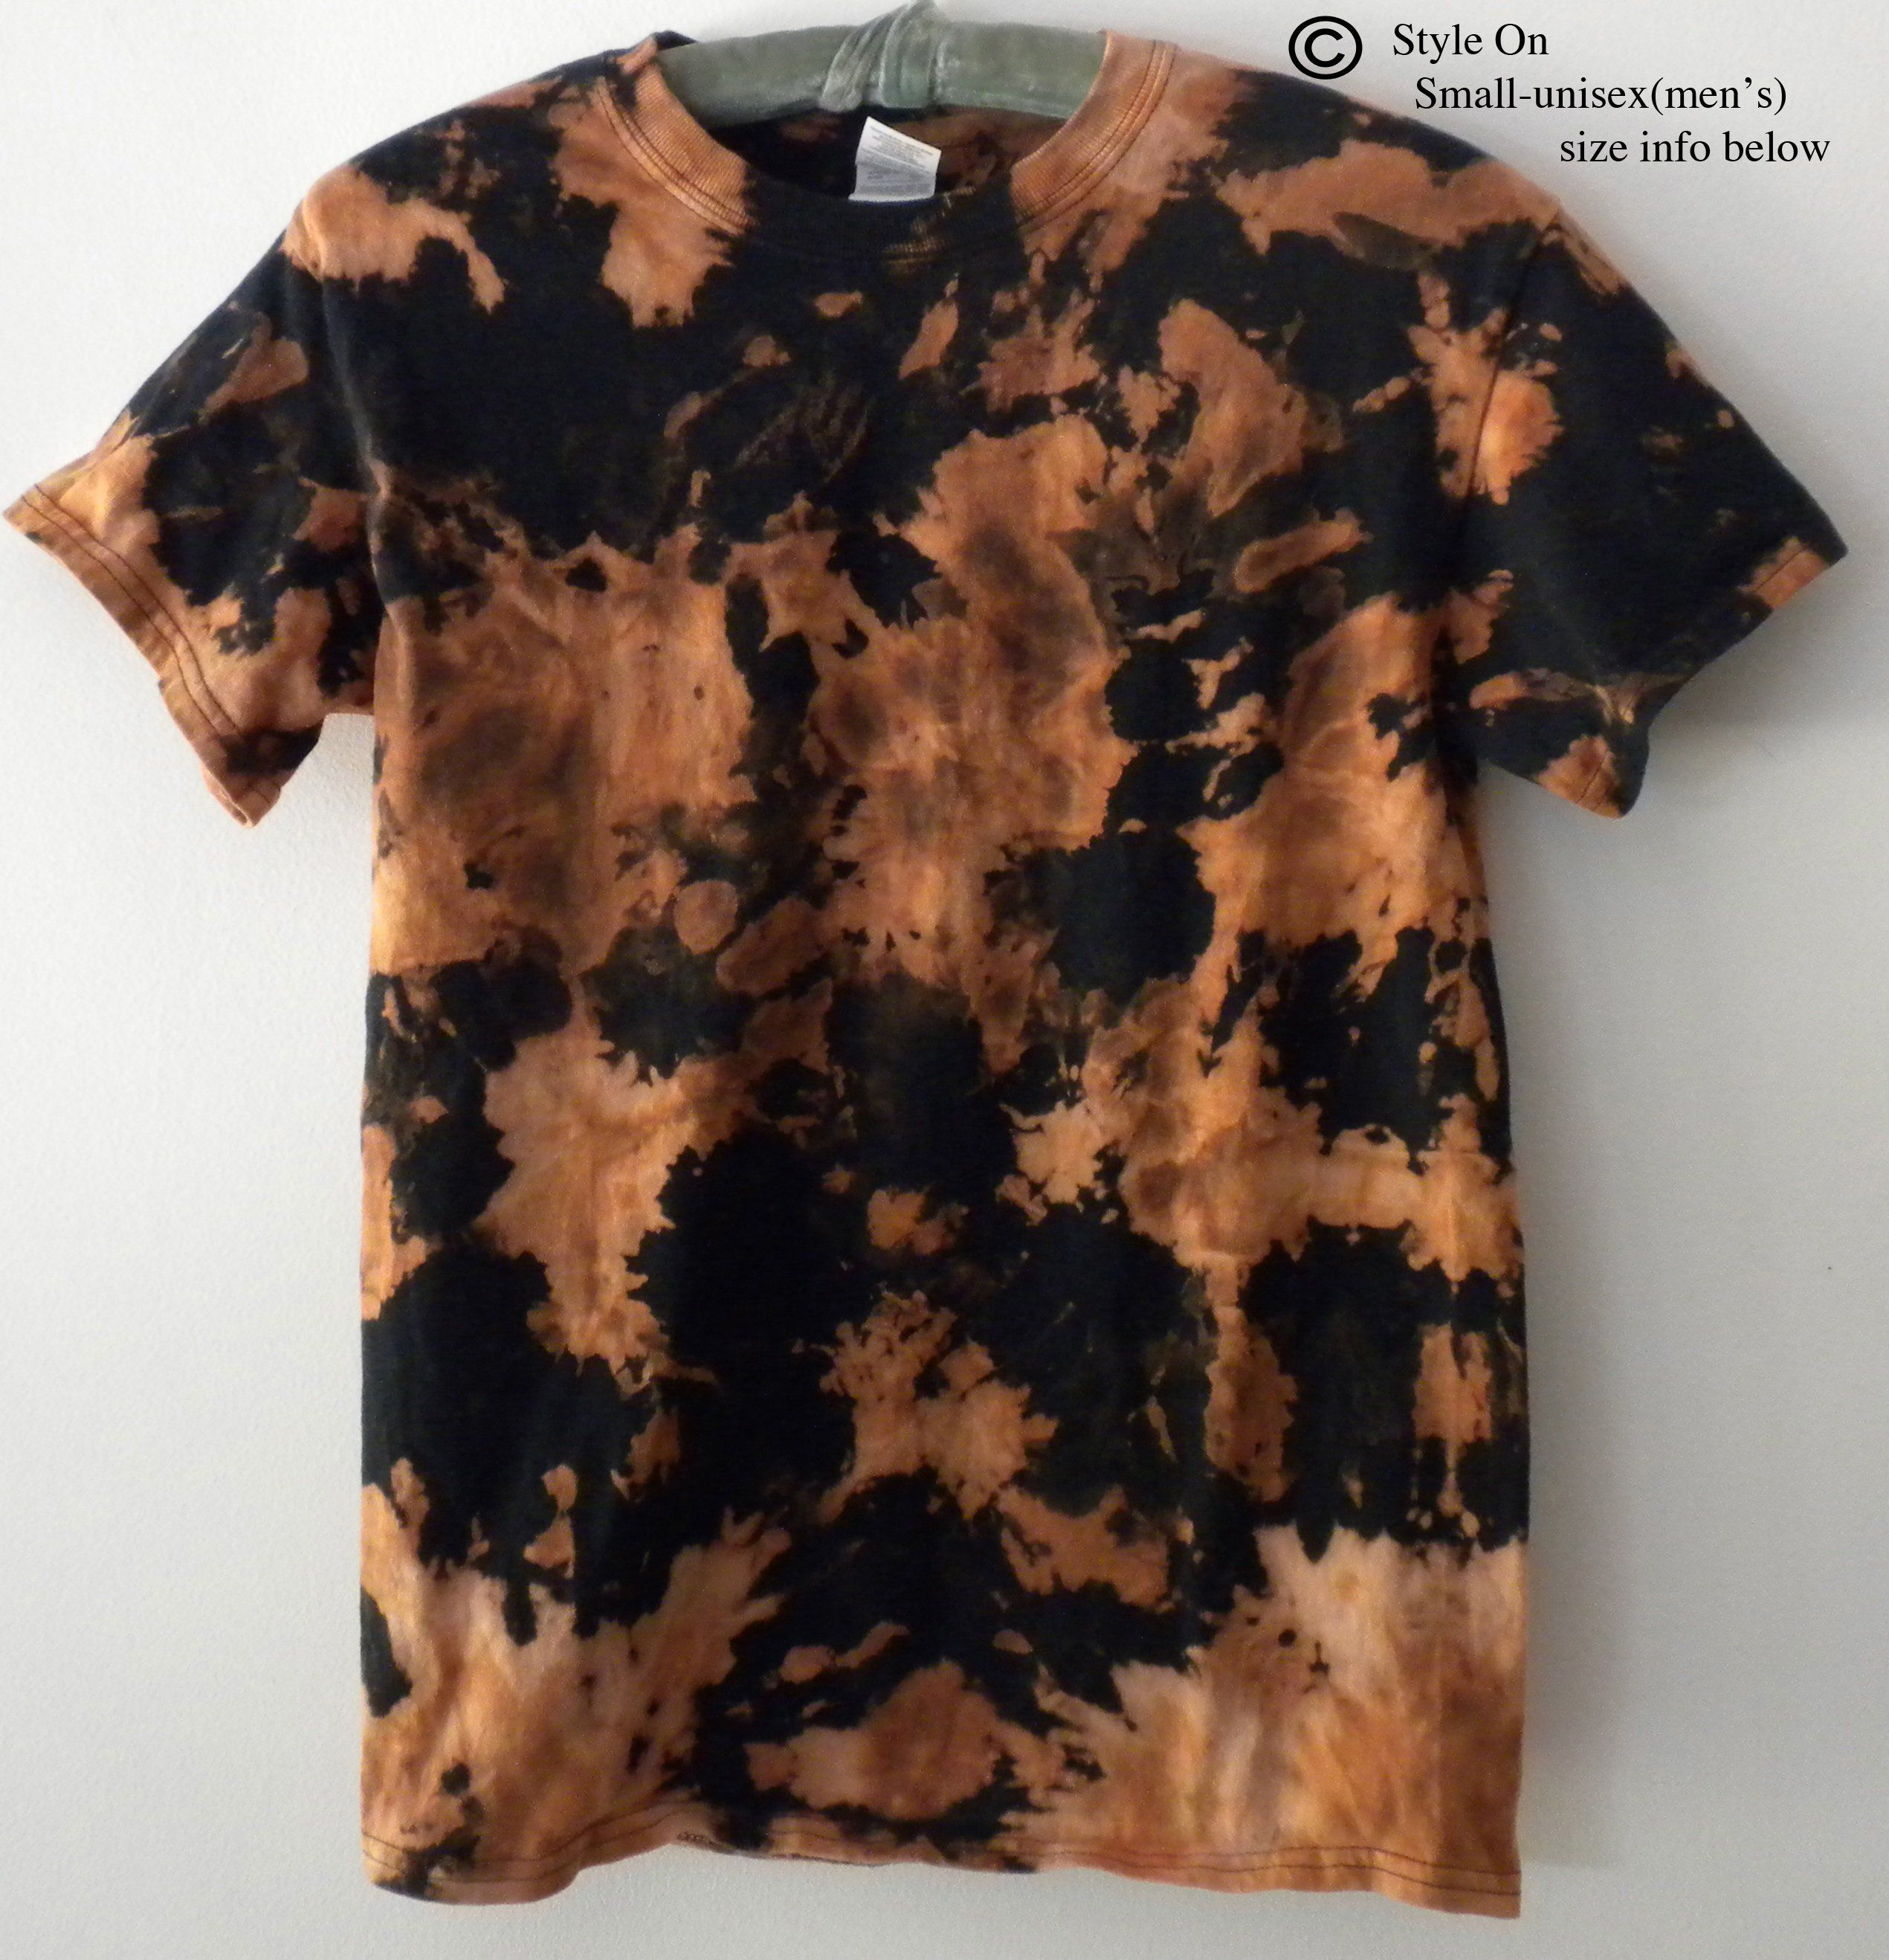 Thanks For The Kind Words Great Shirts Thanks Joefitzgerald4 Https Etsy Me 2qi57dh Etsy Clothing Diy Tie Dye Shirts Tye Dye Shirts Reverse Tie Dye